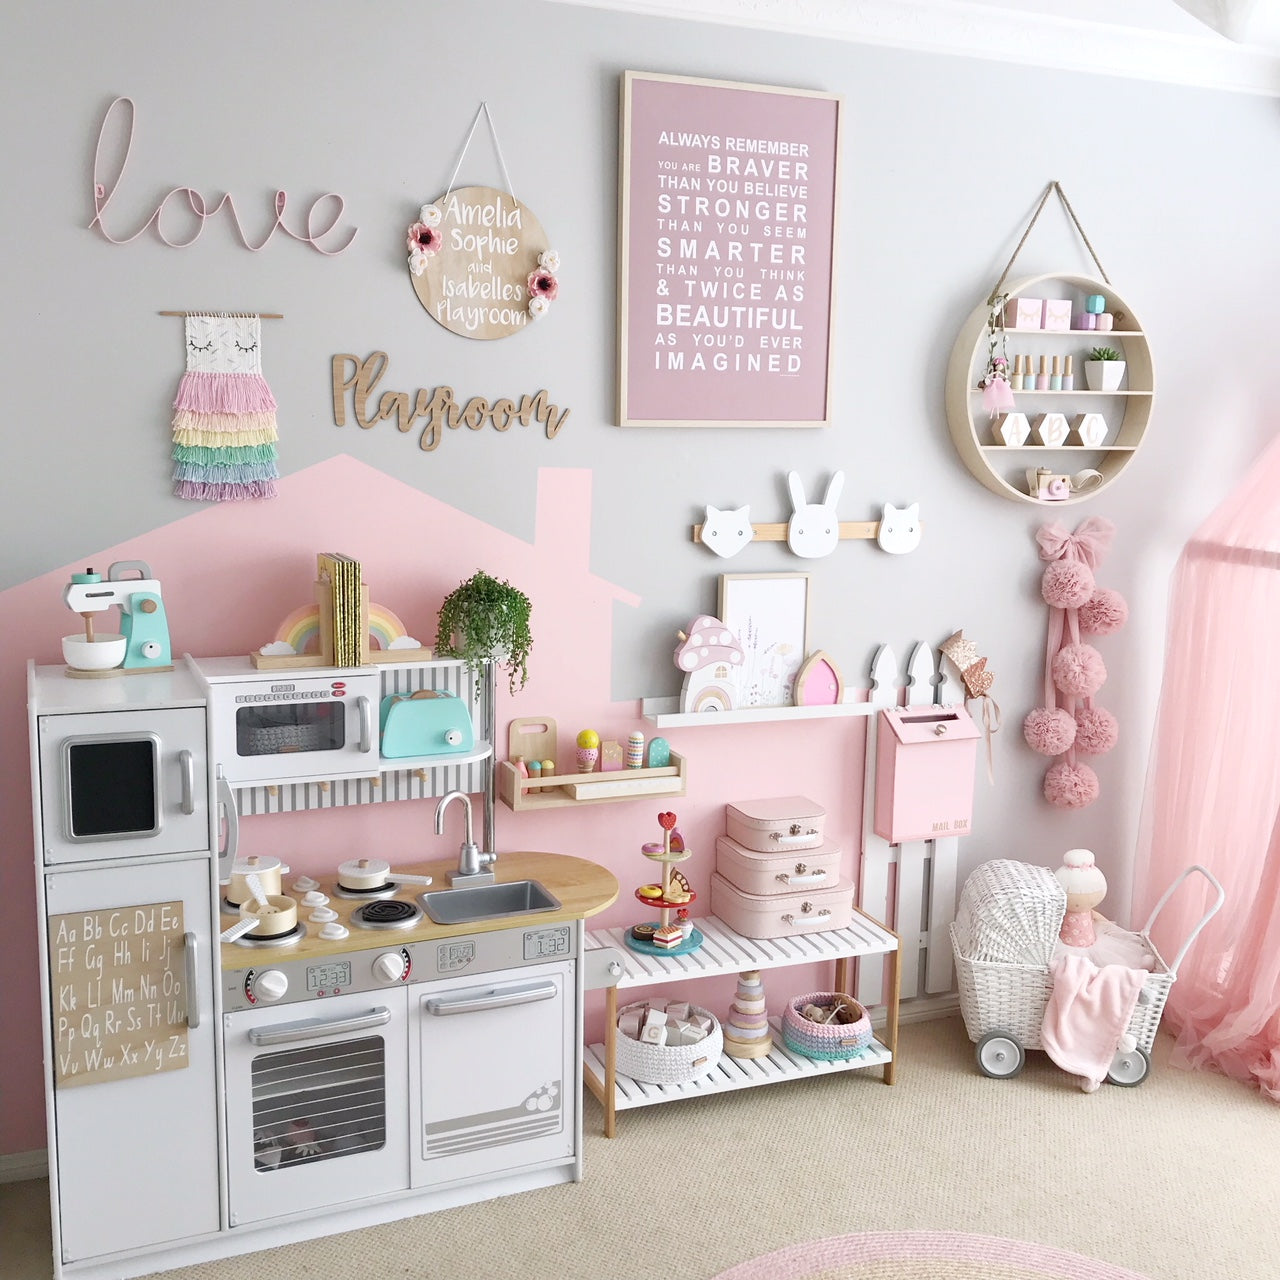 Sweet Home Styling - The Ultimate Playroom Makeover